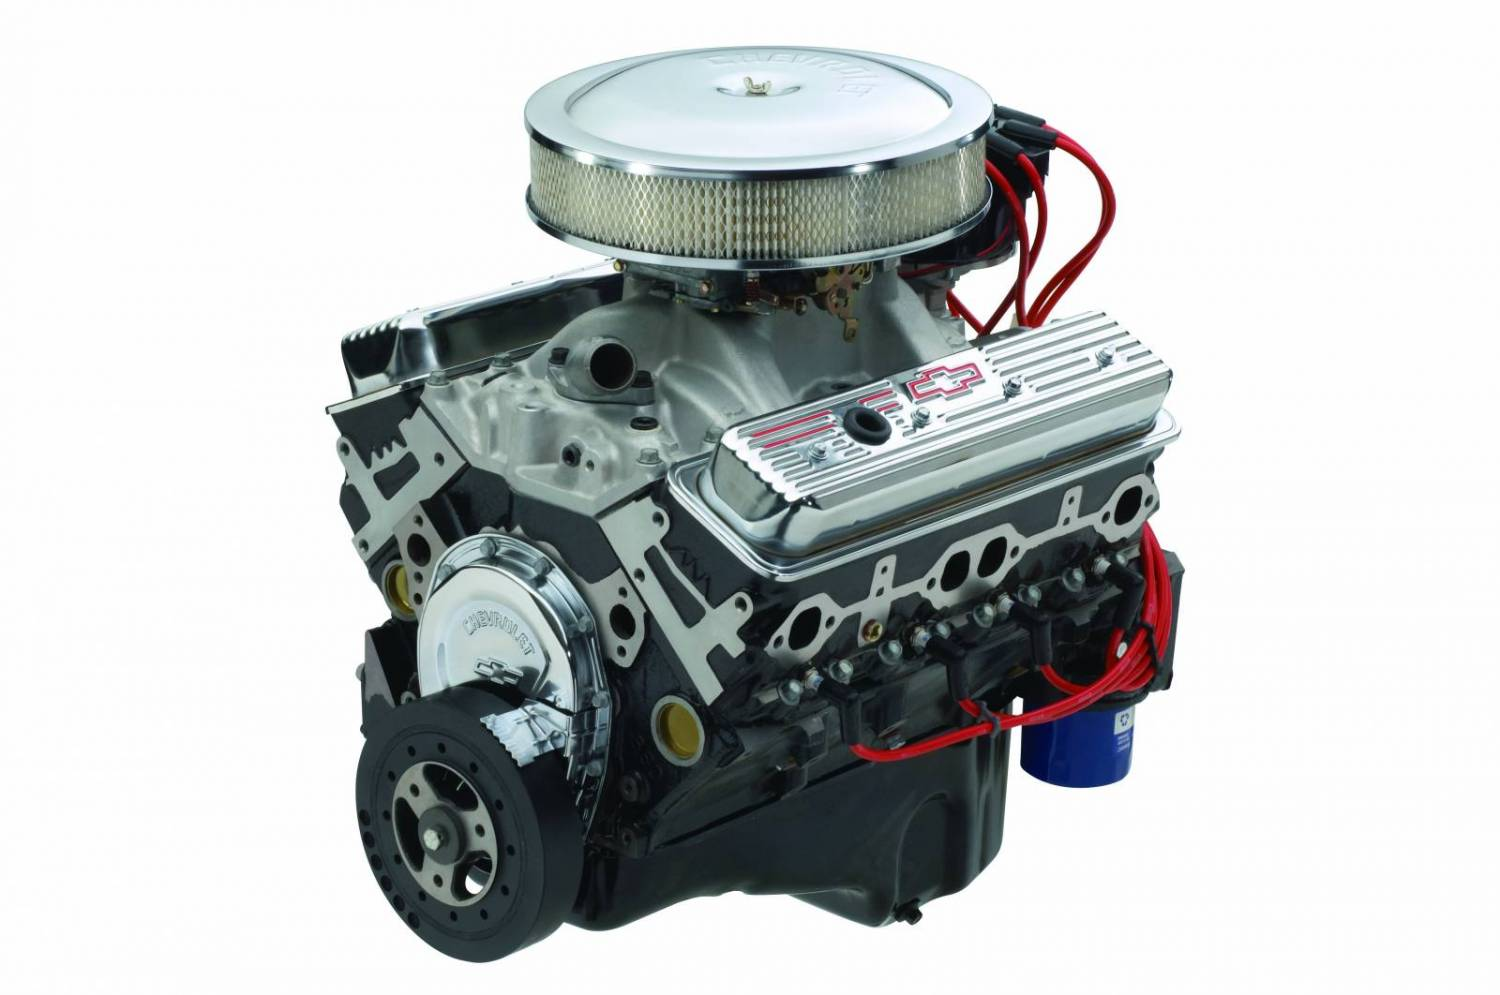 Gm Chevy Crate Engine, Gm, Free Engine Image For User ...